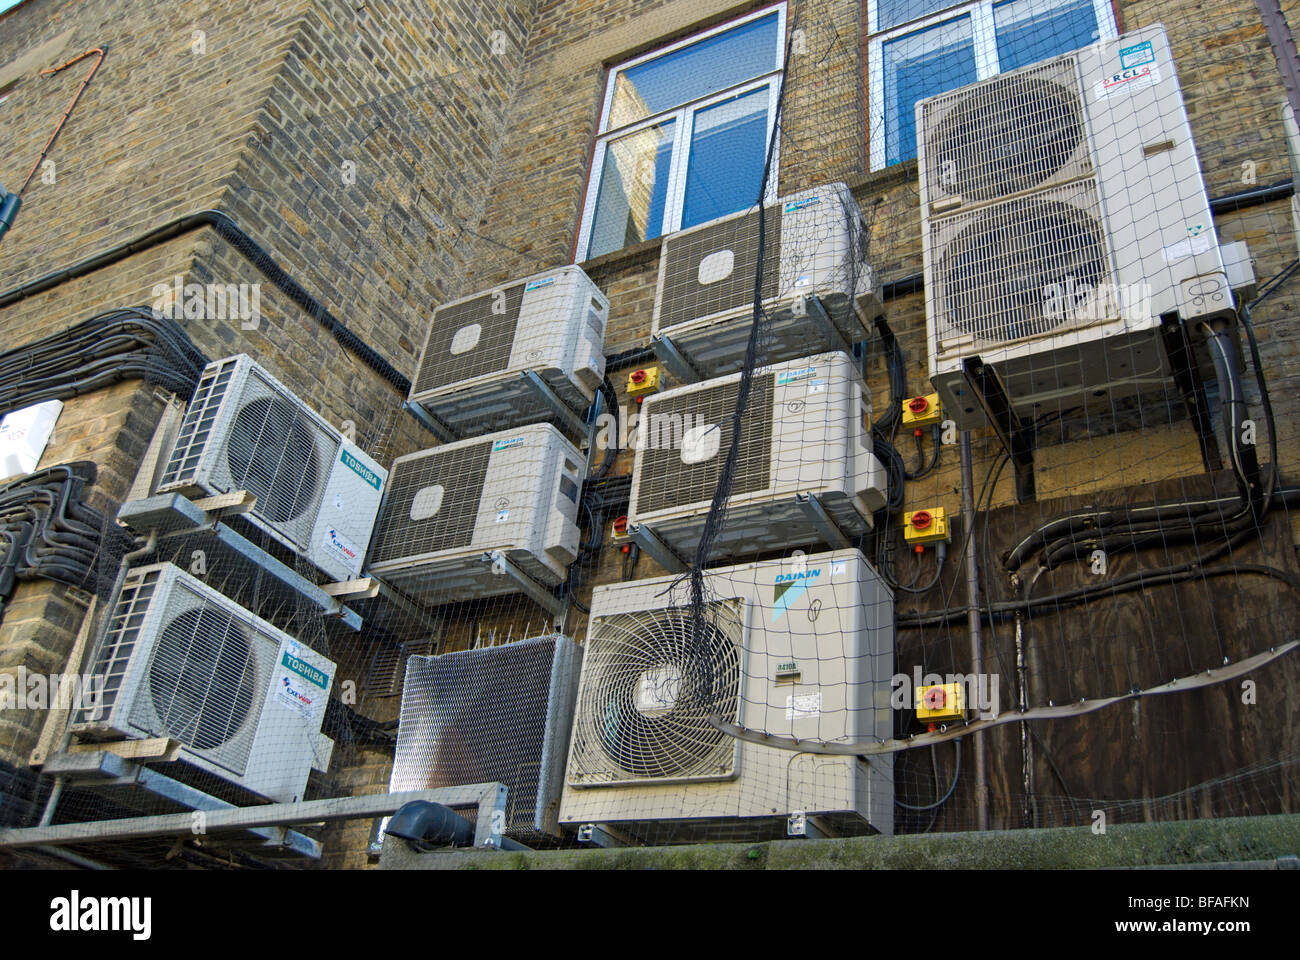 air conditioning machine fans on an exterior wall in a back street